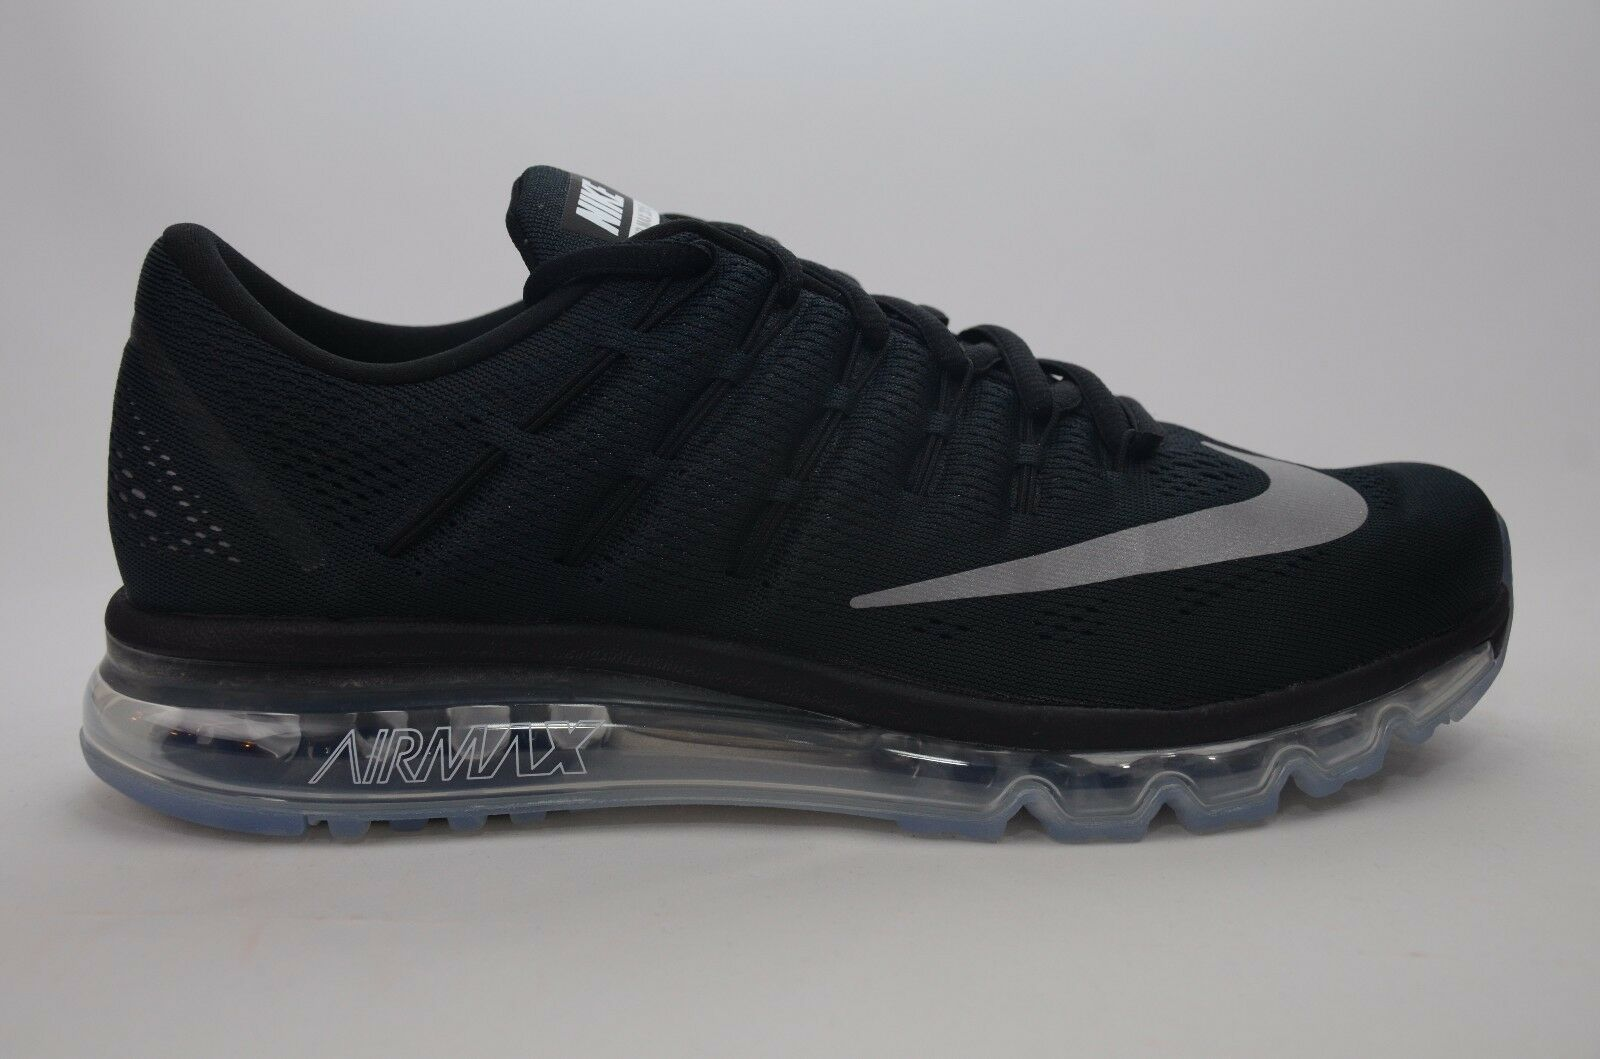 the new air max 95